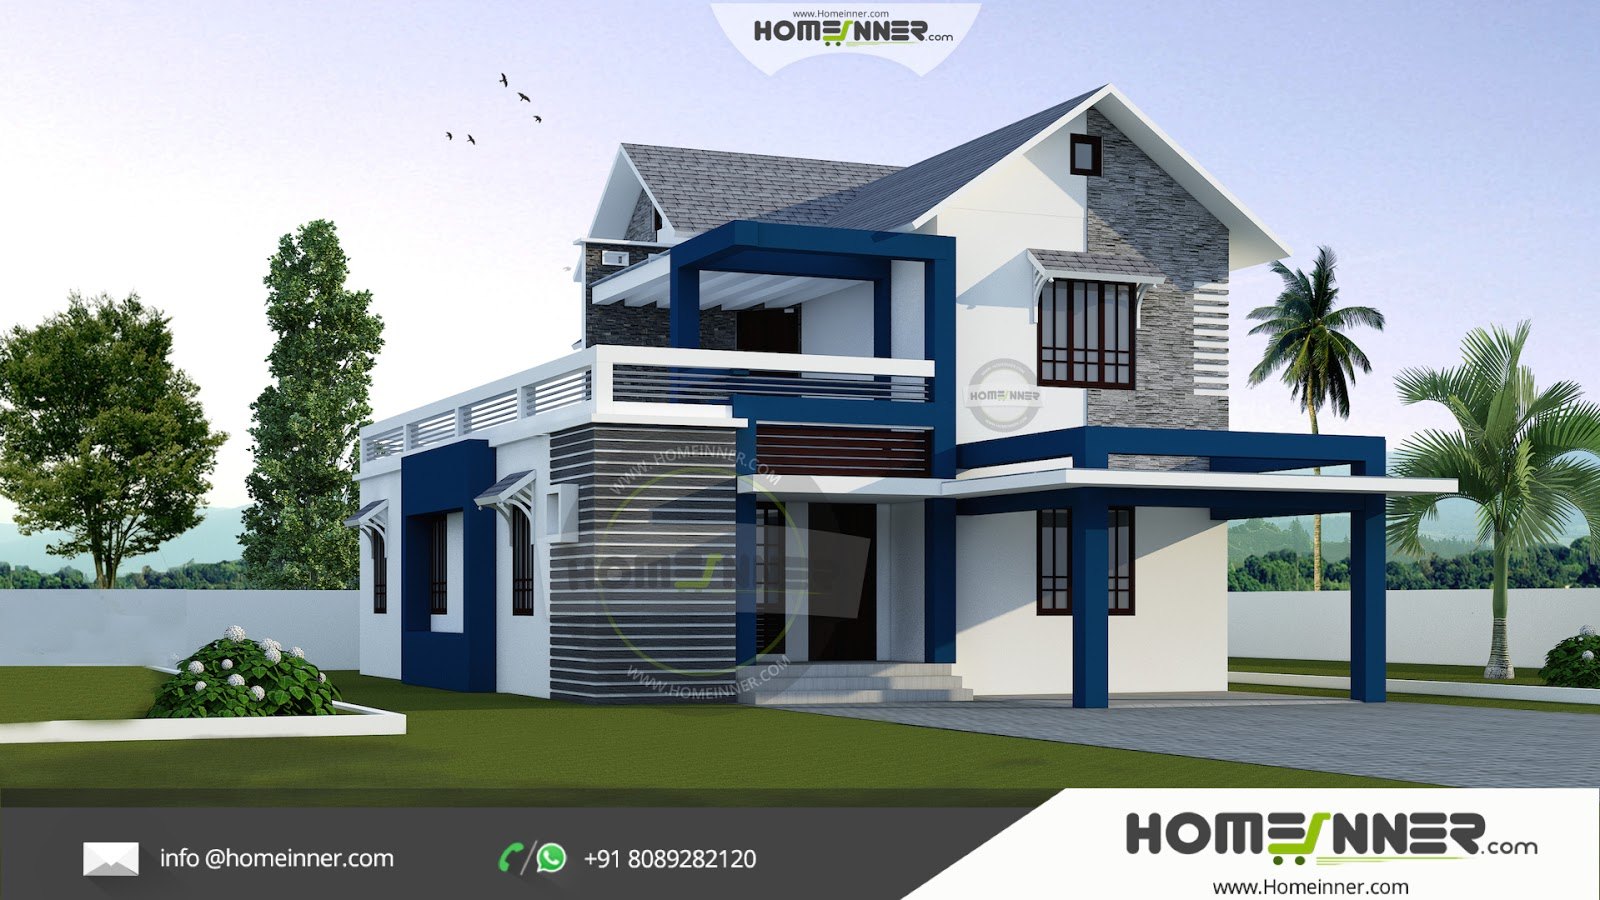 Modern stylish 3 bhk small budget 1500 sqft indian home for 3 bedroom indian house designs